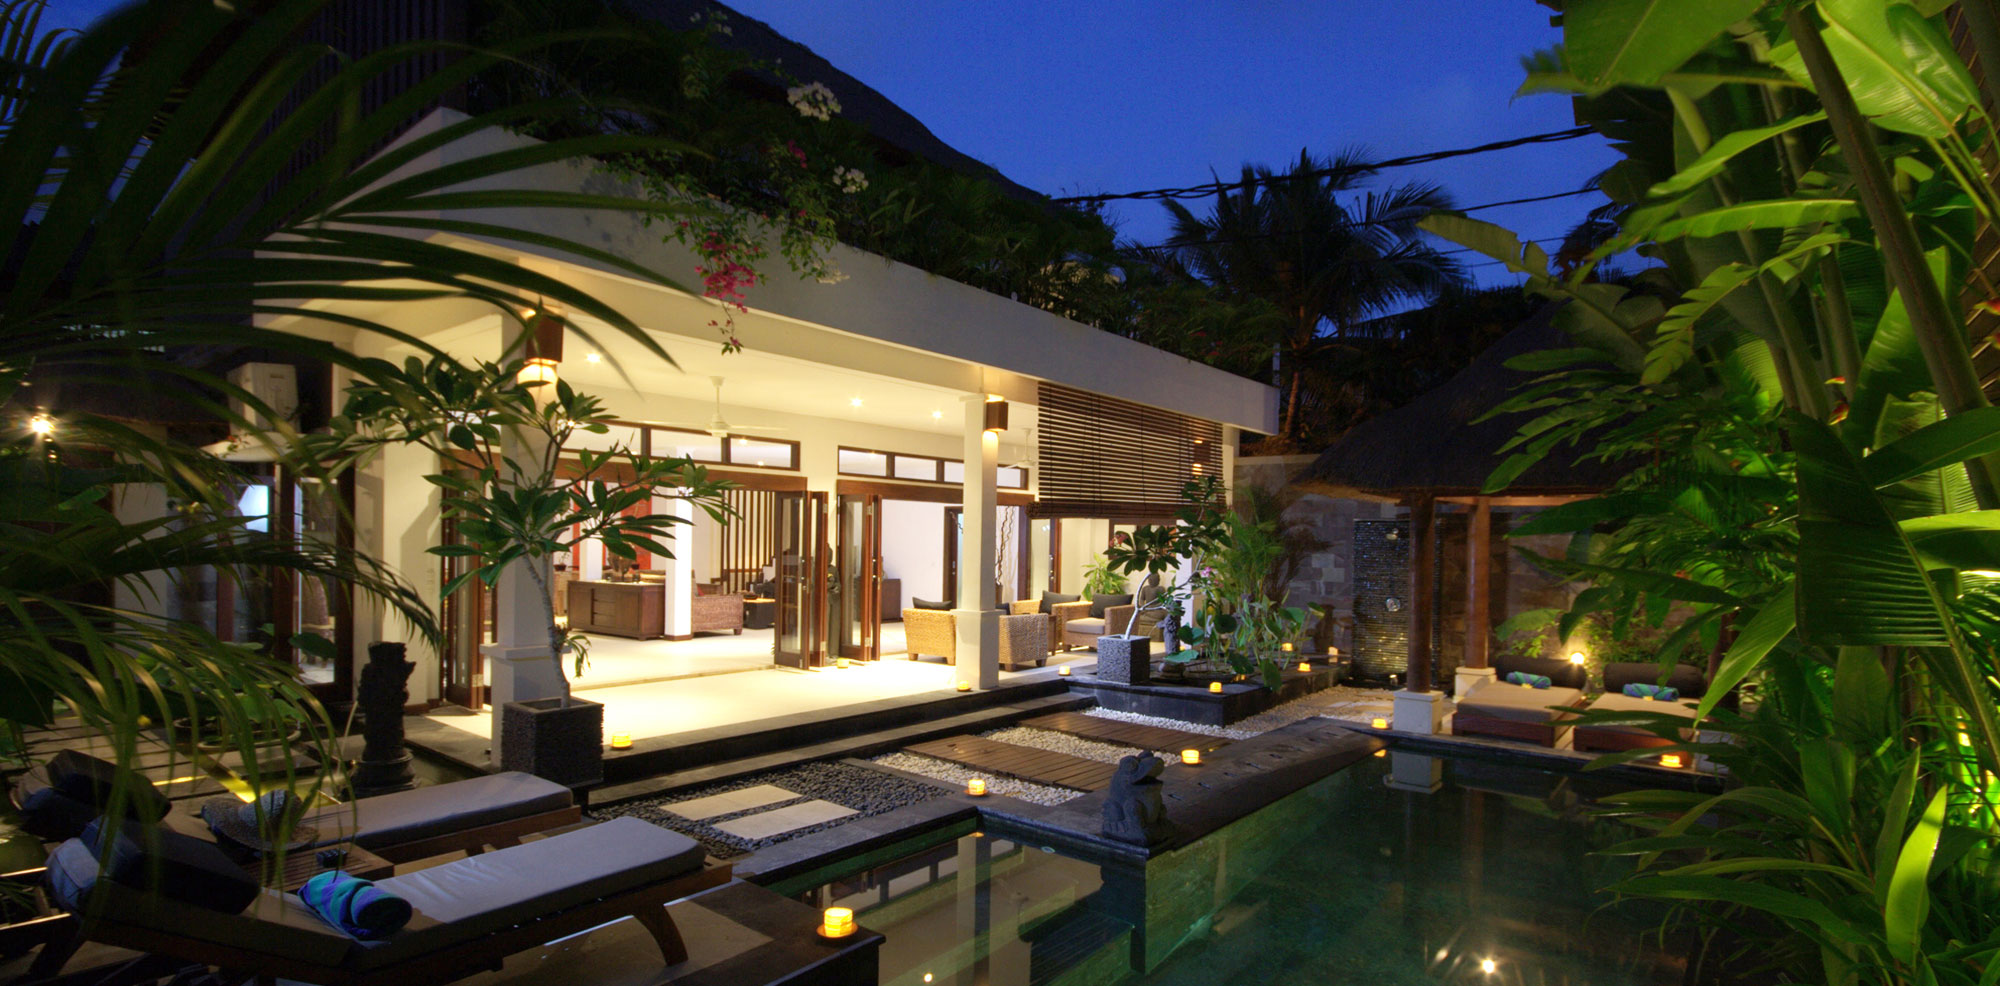 Bali Luxury 2 Bedroom Villas ... Villa Kipas, 2 Bed Villa Near Seminyak Beach ...